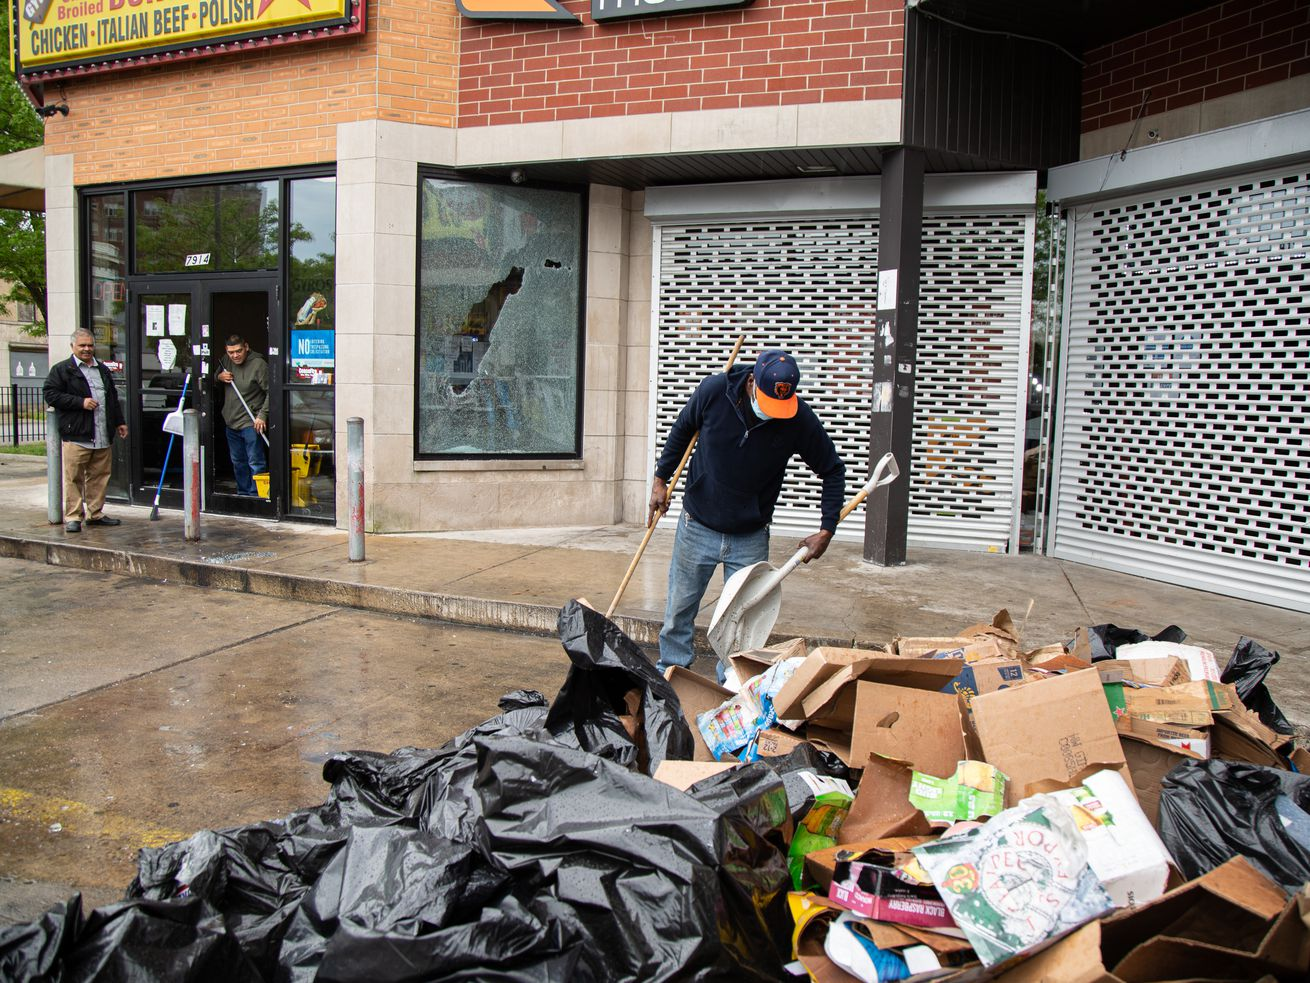 Profane exchange: Lightfoot, chief City Council critic tussle over police tactics during looting